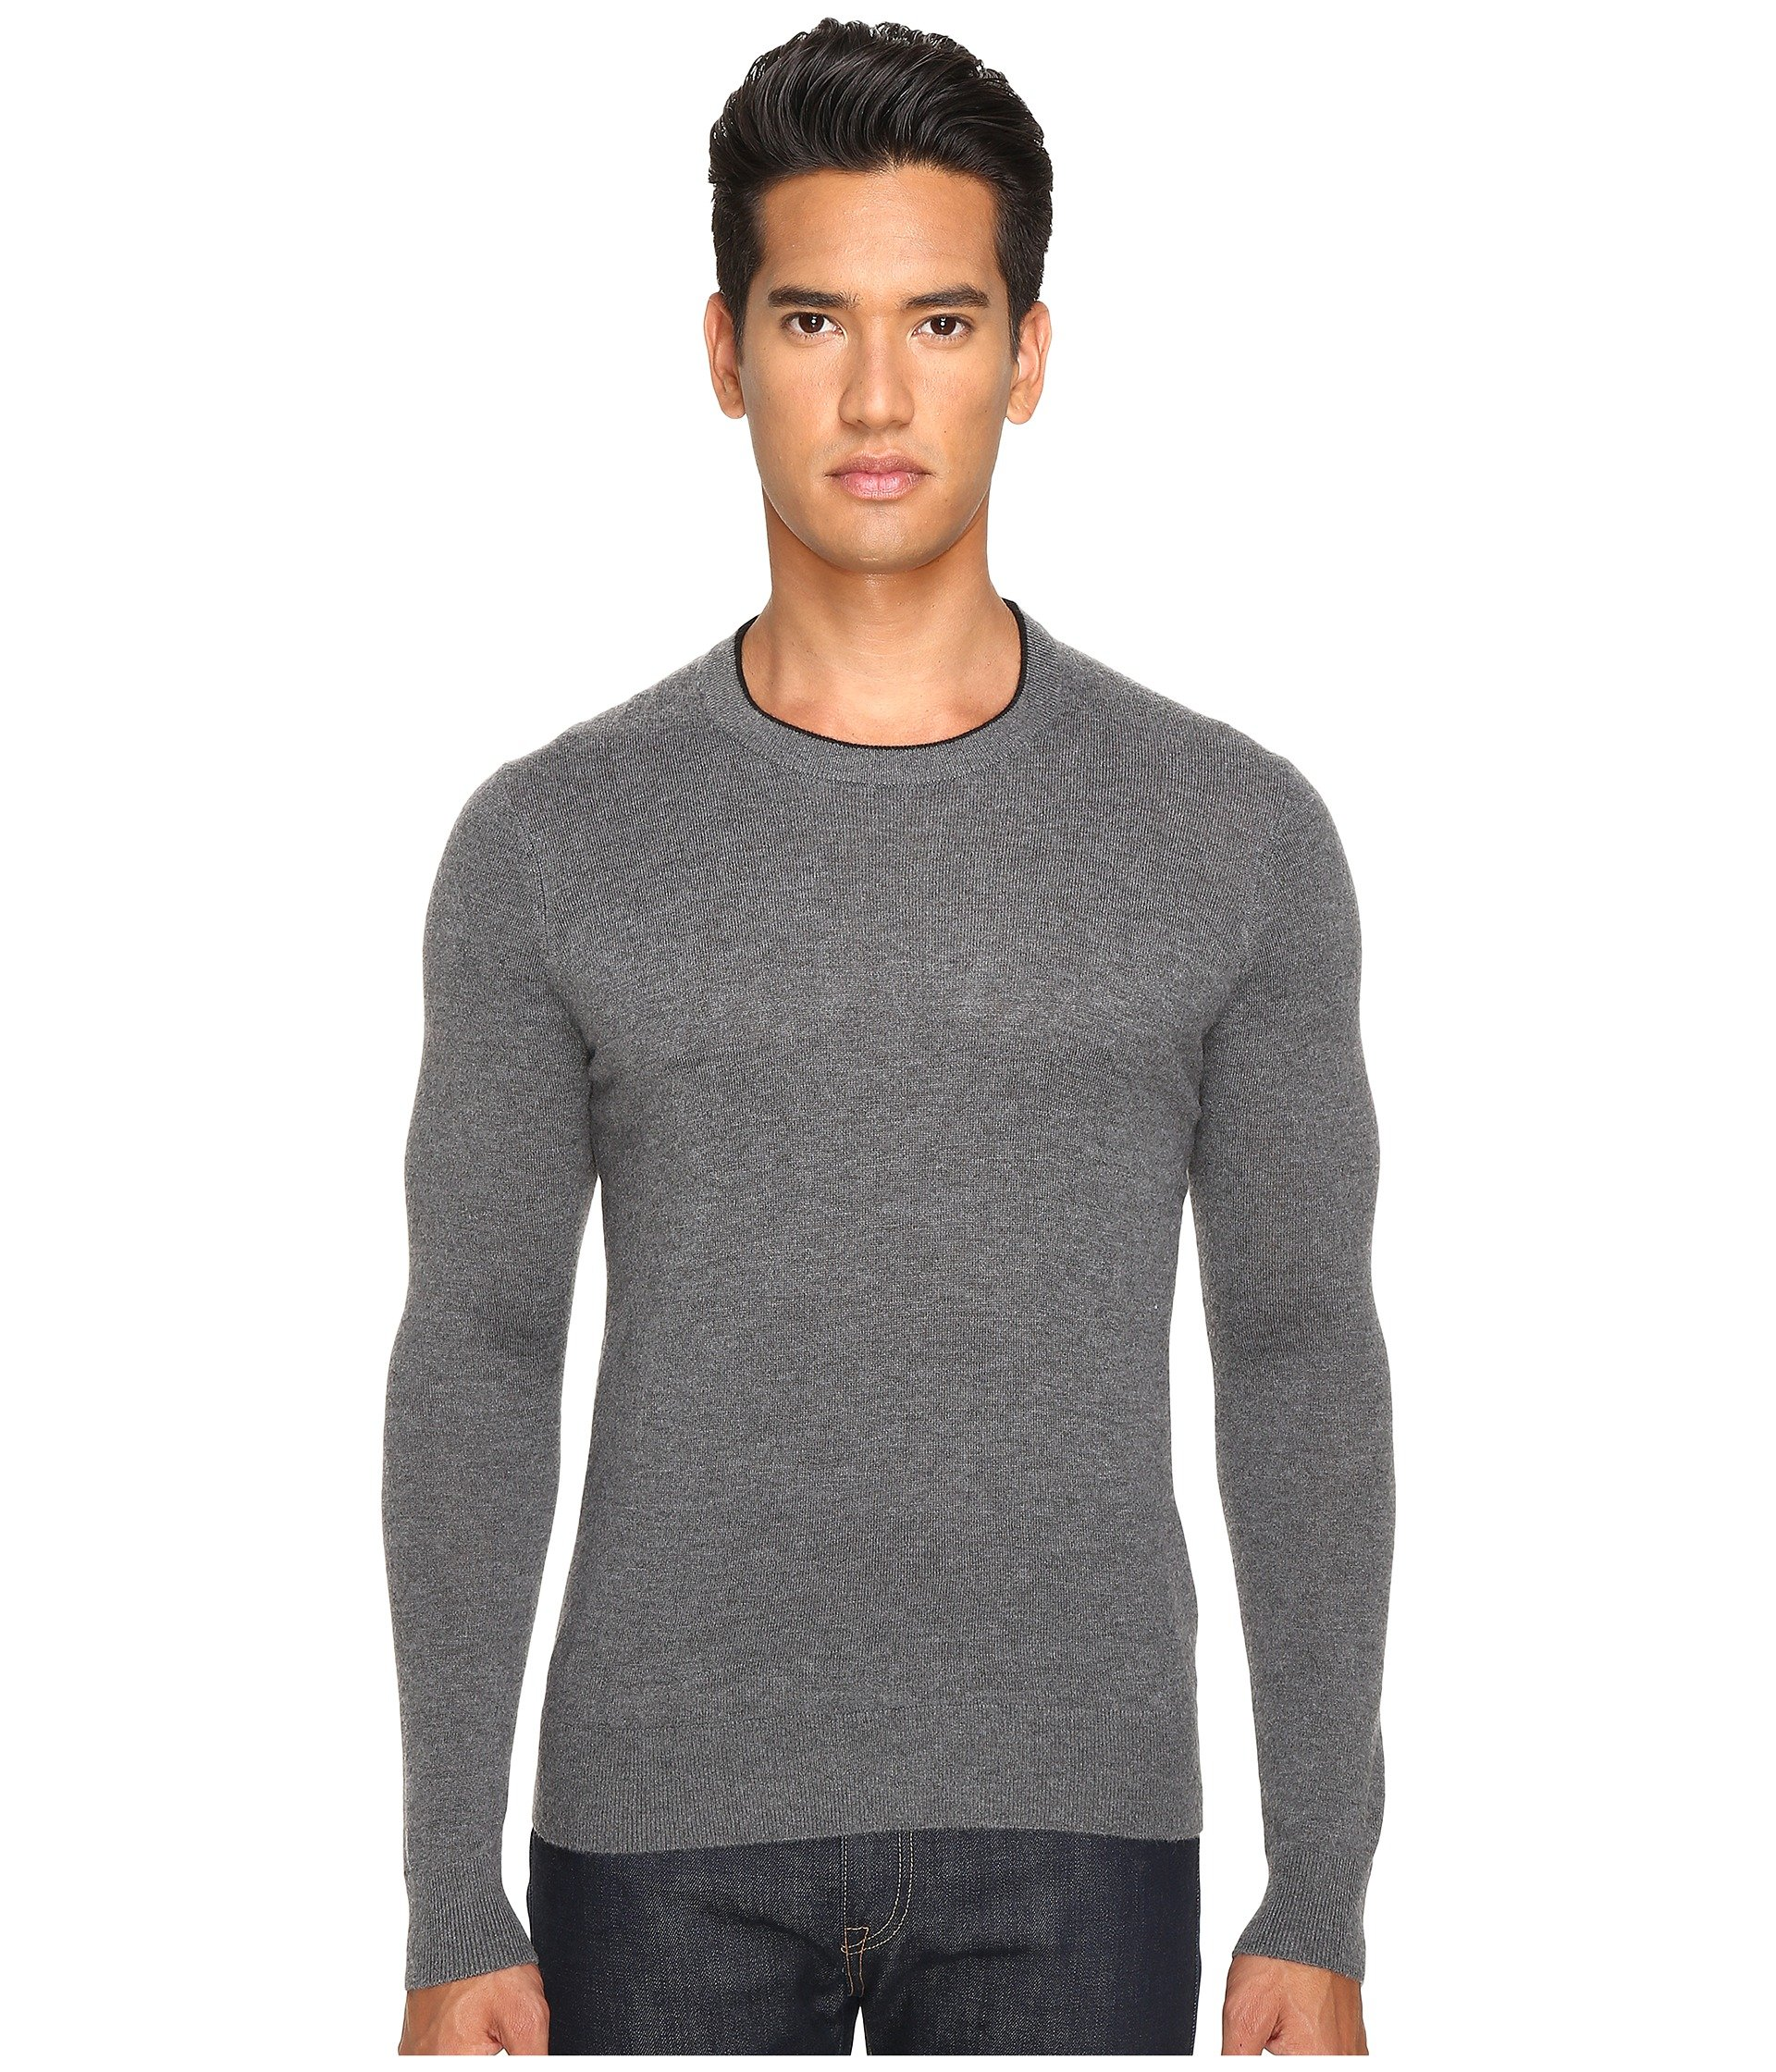 JACK SPADE Jersey Stitch Crew Neck Sweater, Grey